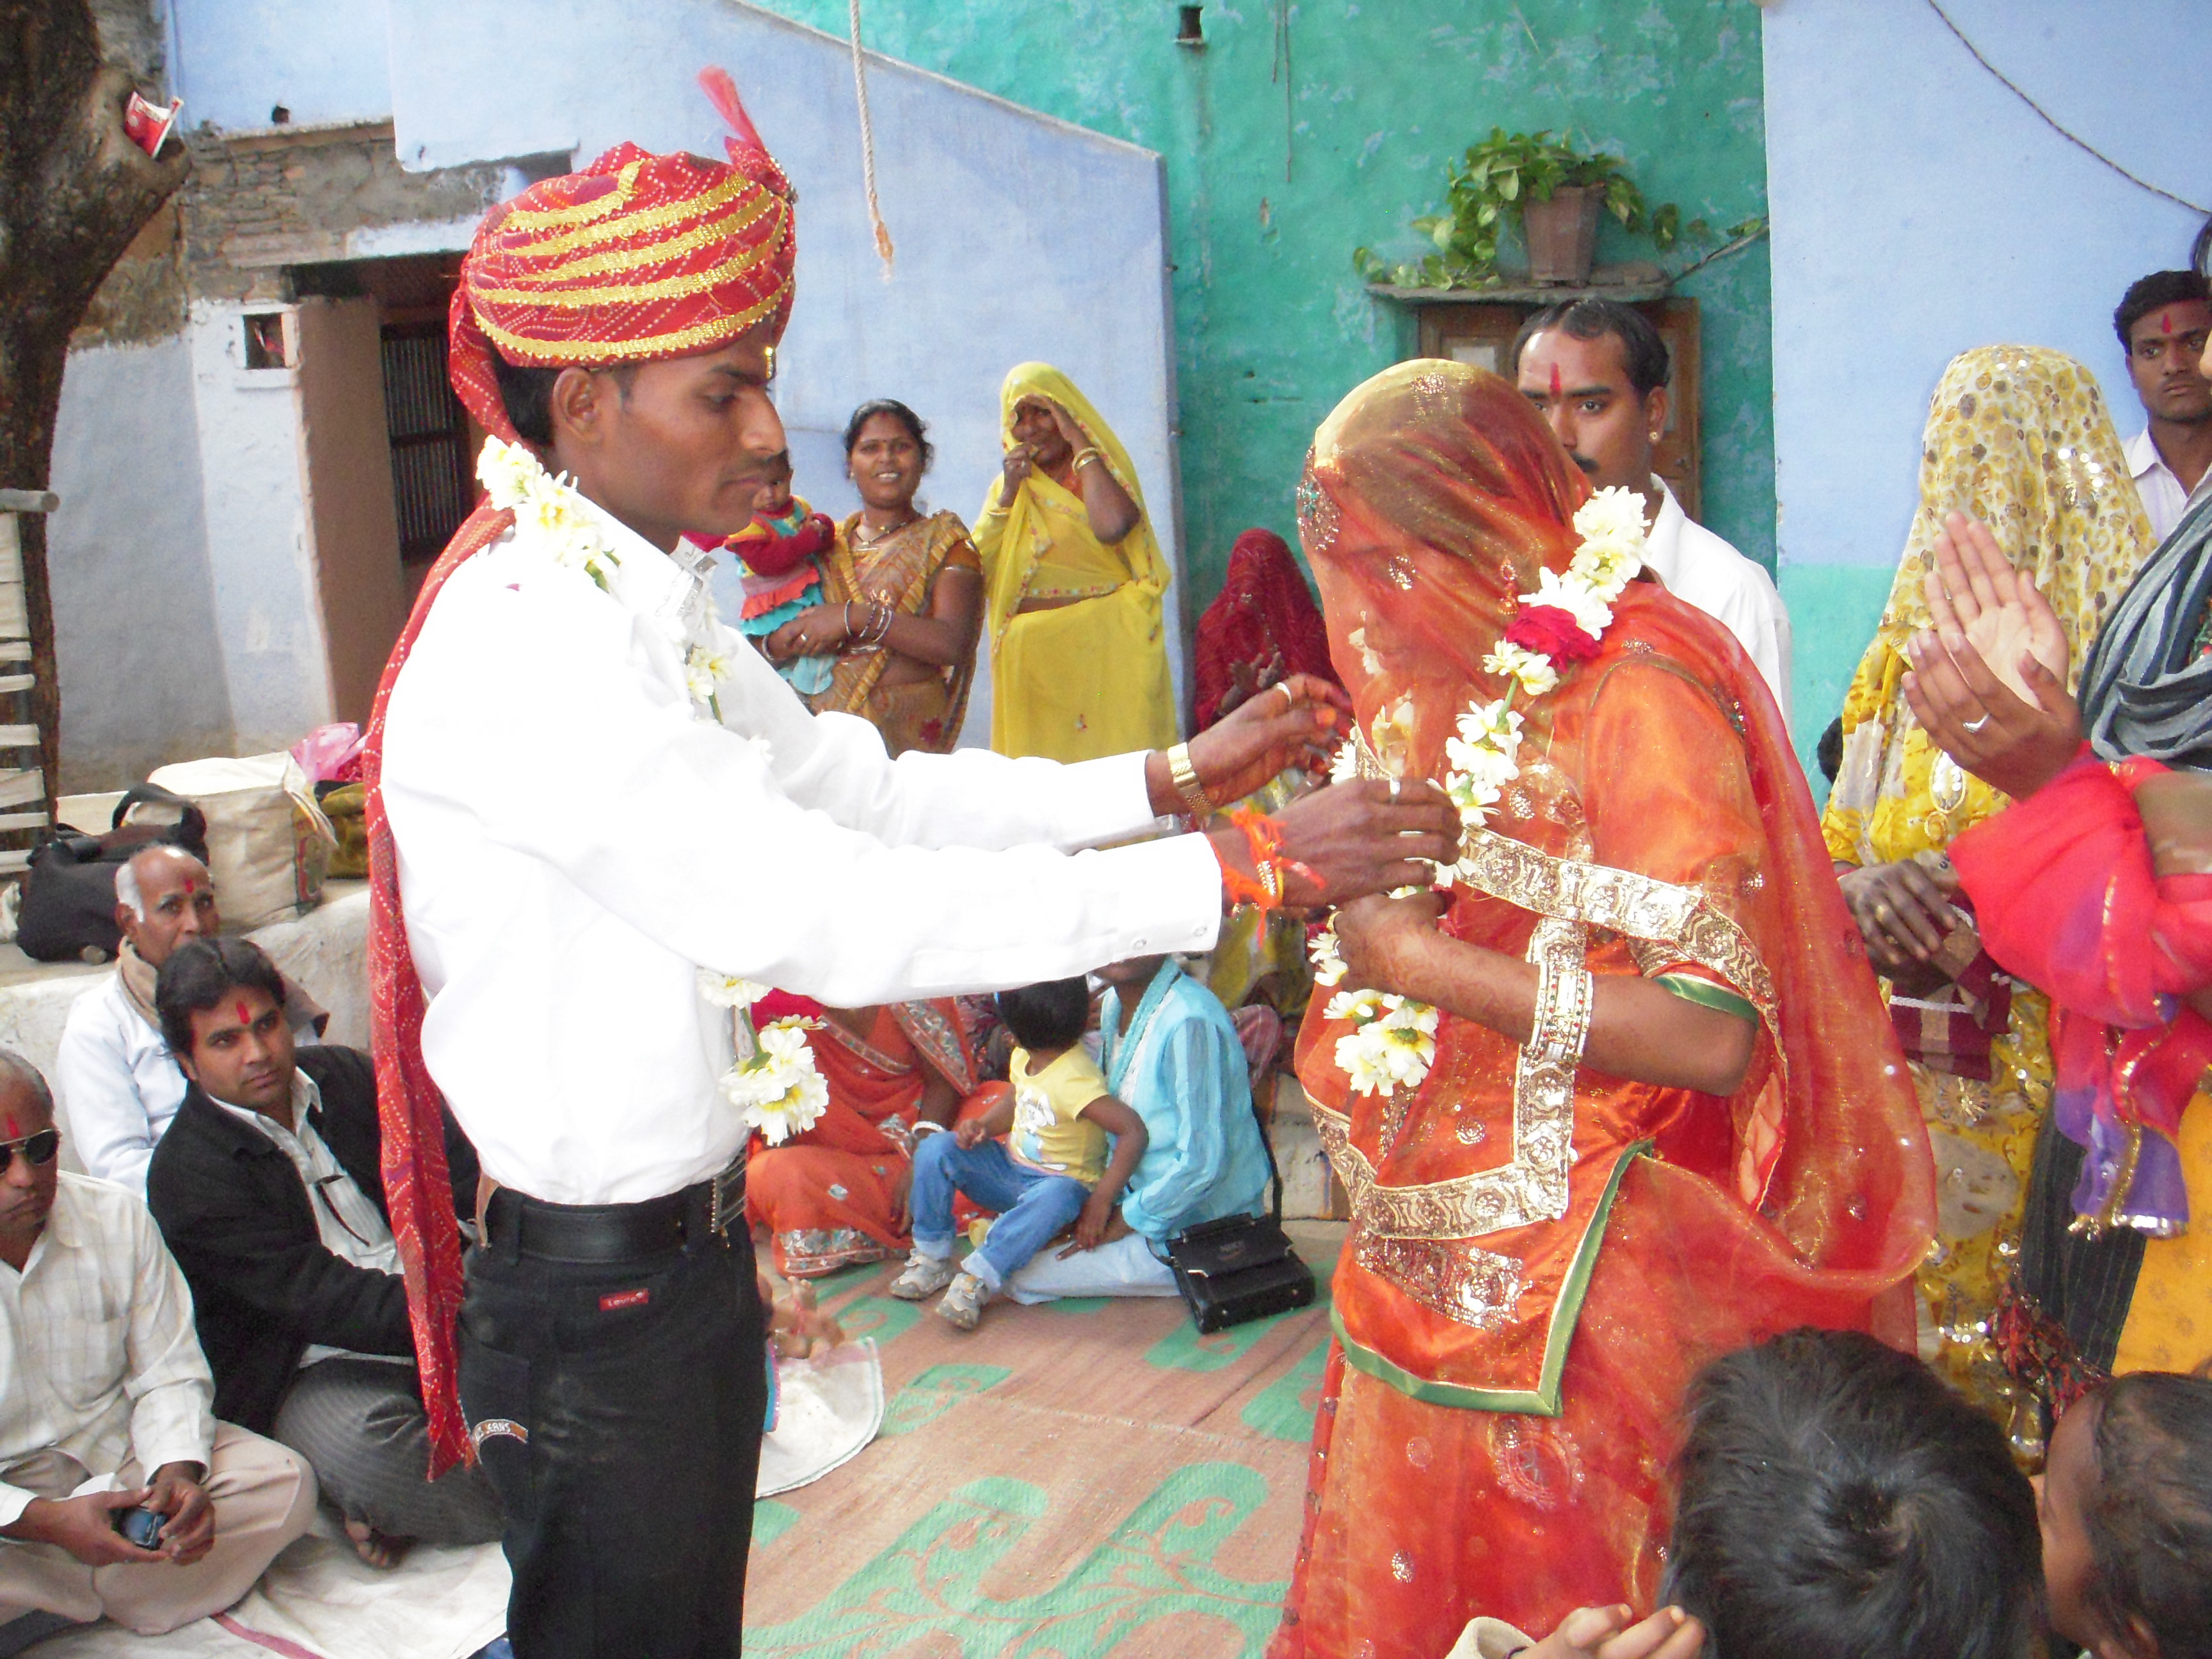 A wedding ceremony.JPG